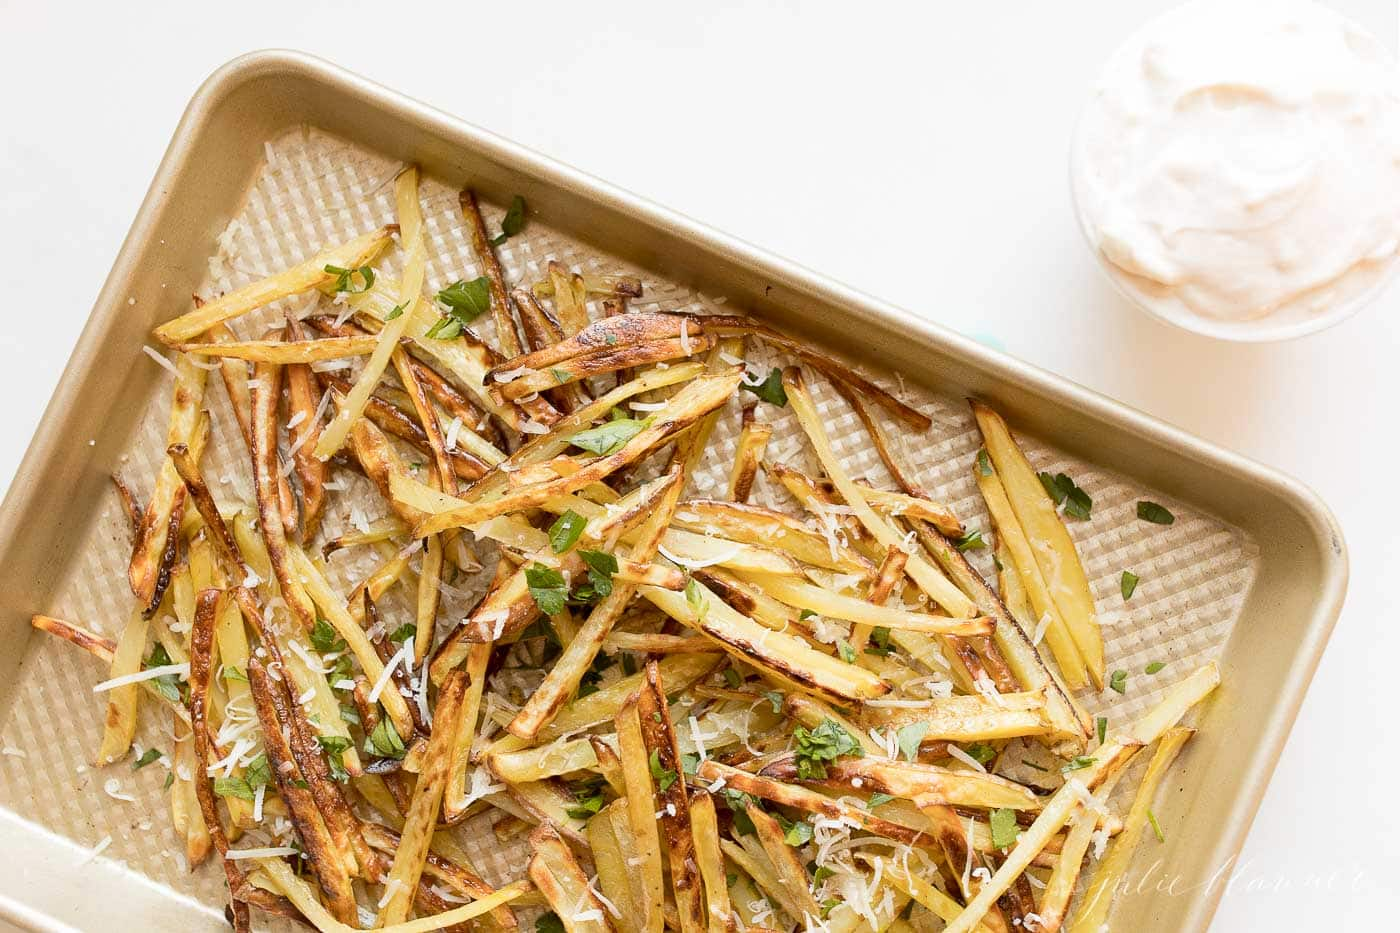 truffle fries with Parmesan and parsley on a sheet pan